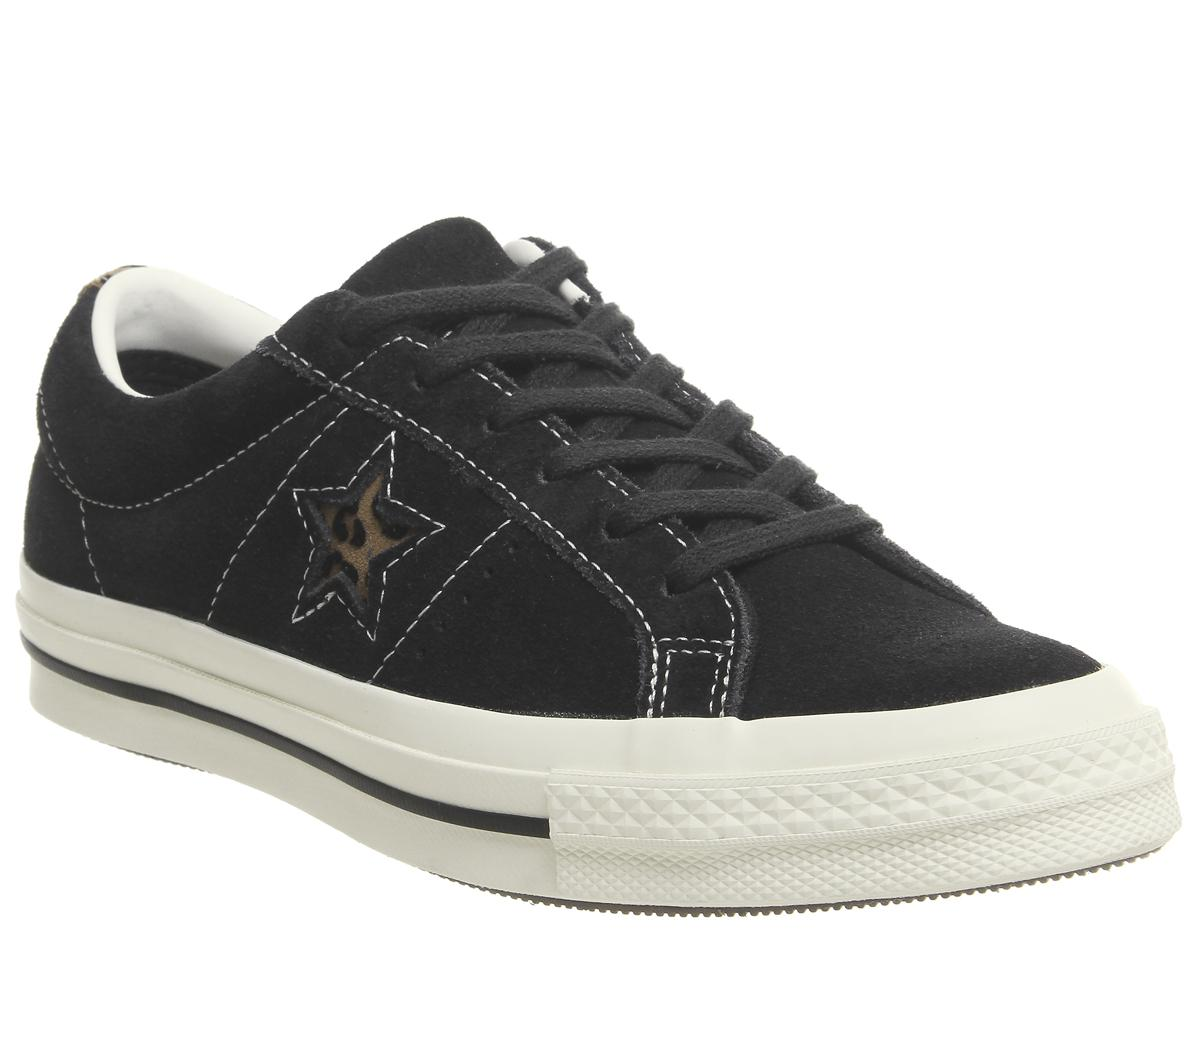 7fa8cc3560 Converse One Star Trainers Black Egret Leopard Exclusive - Hers trainers